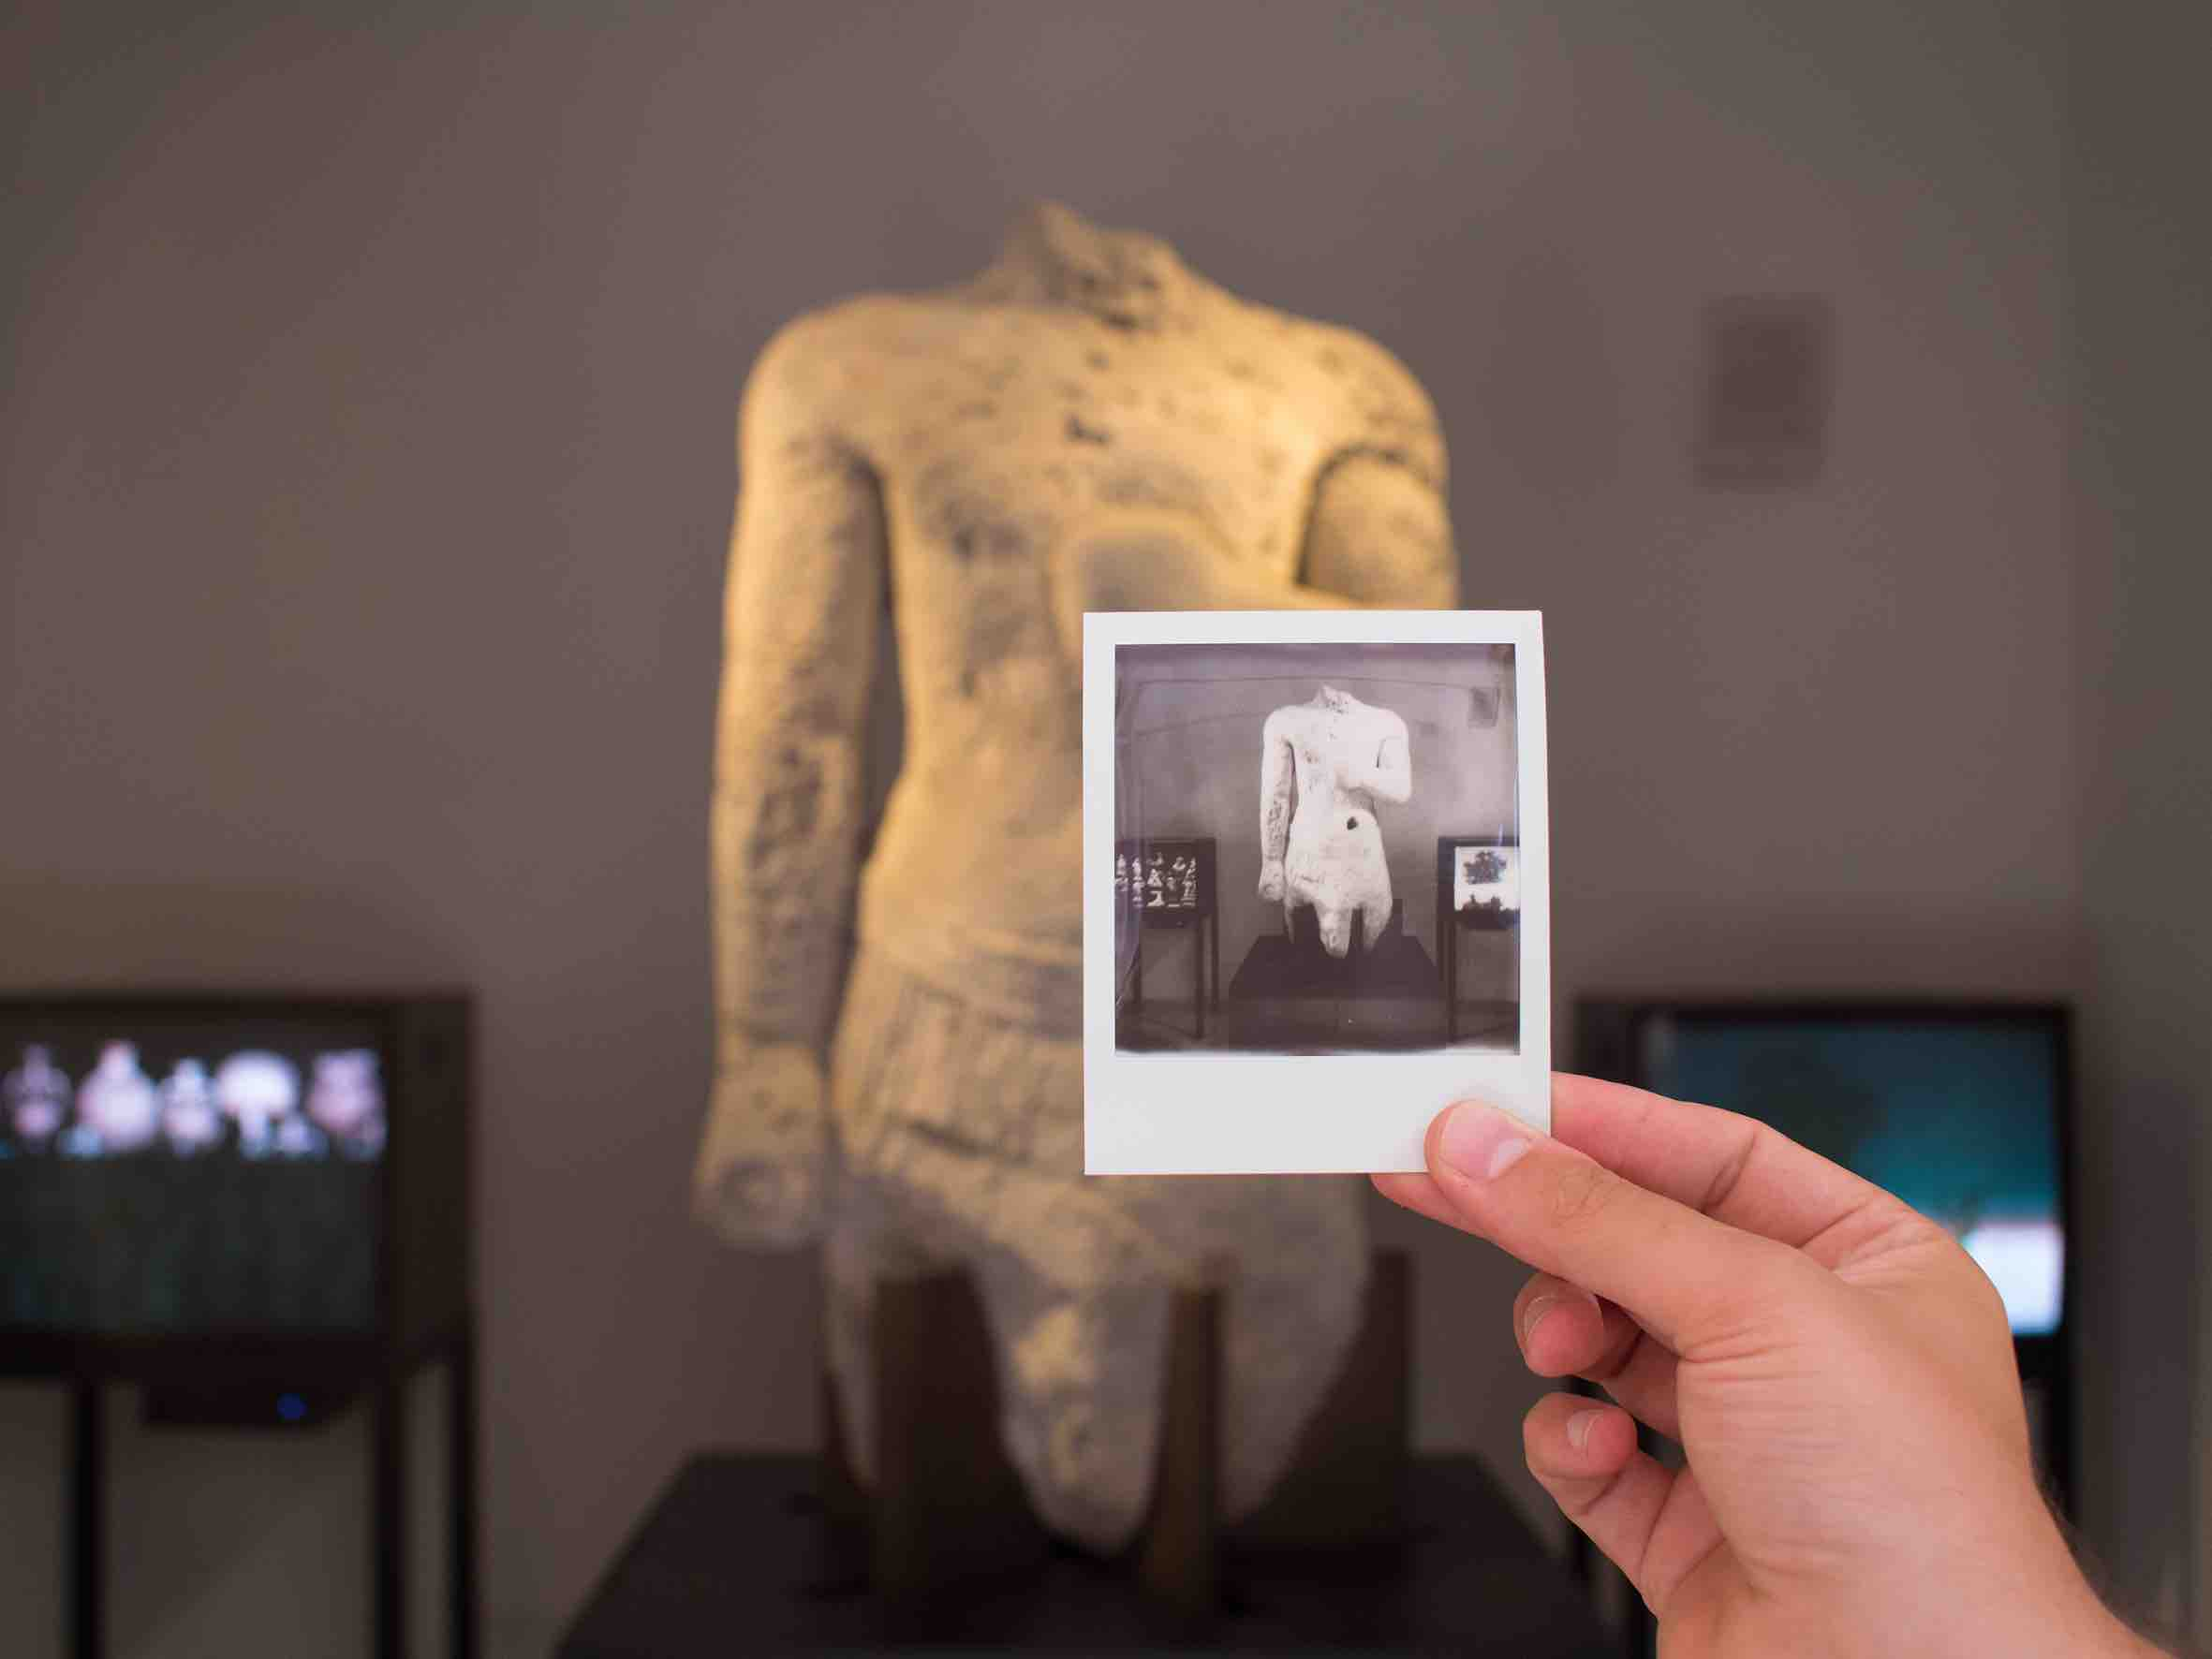 Marianna Christofides 01, 02 veduta dell'installazione video al Museo Salinas di Palermo nella sala del Torso dello Stagnone: sul monitor di sinistra: Here let me stand 2013 video HD a 1 canale HD, 29'29'', loop, muto, a colori, 4:3 Courtesy l'artista sul monitor di destra: Olymp's Sheds: Intermezzo 1 (Mythology Park) 2017 film in 16mm a un canale riversato su DVD, 6', loop, muto, a colori e in b/n, 4:3 Courtesy l'artista ph Costanza Arena e Roberto Salvaggio